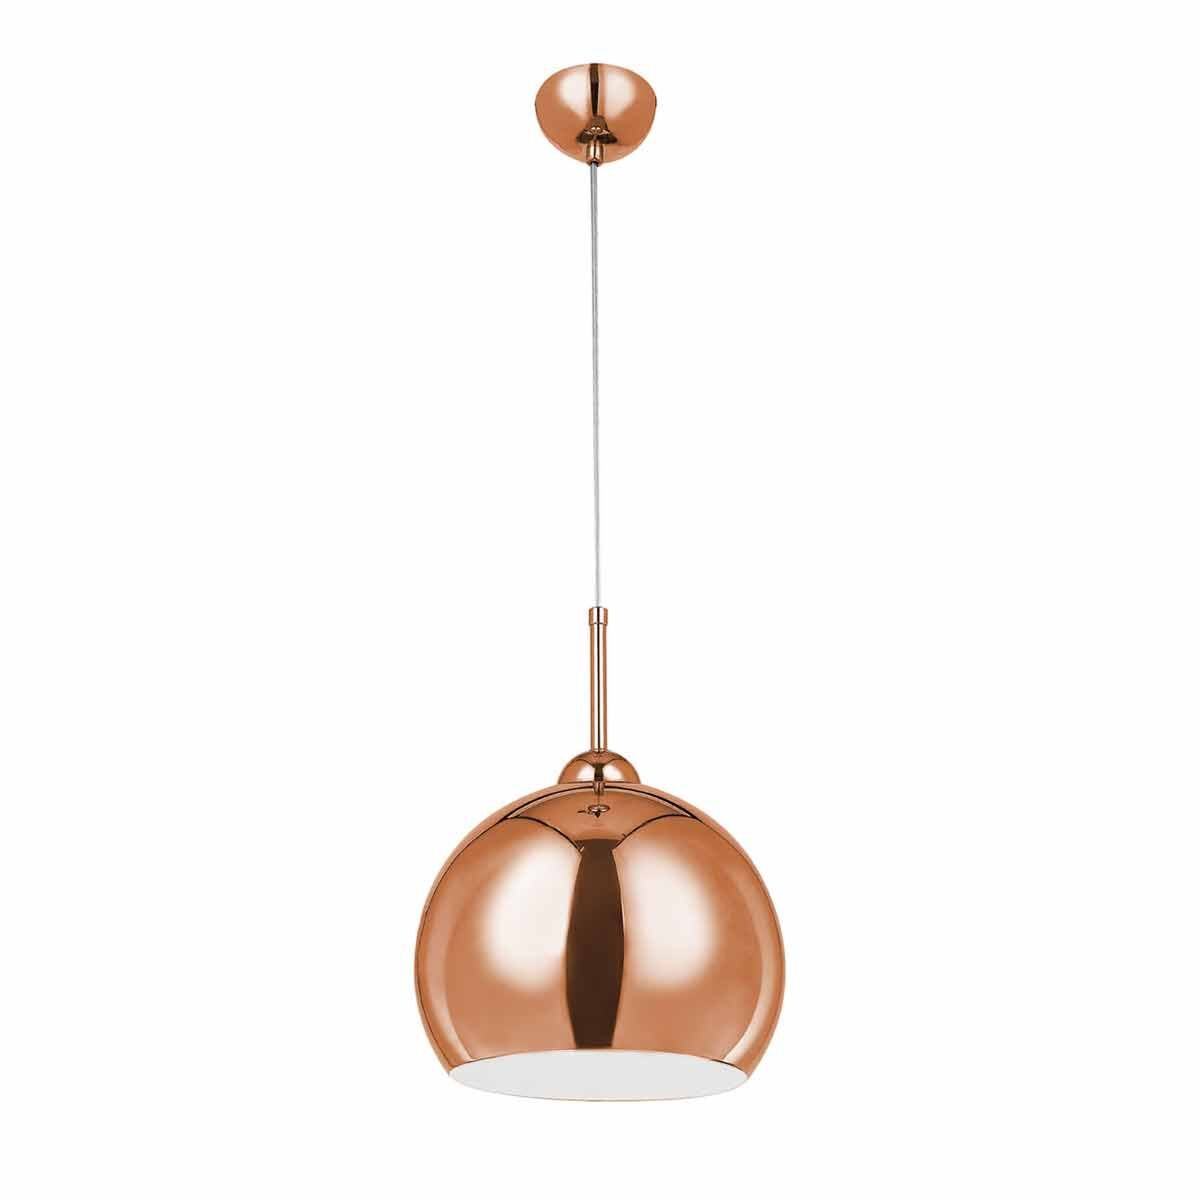 Premier Housewares Copper Finish Pendant Light